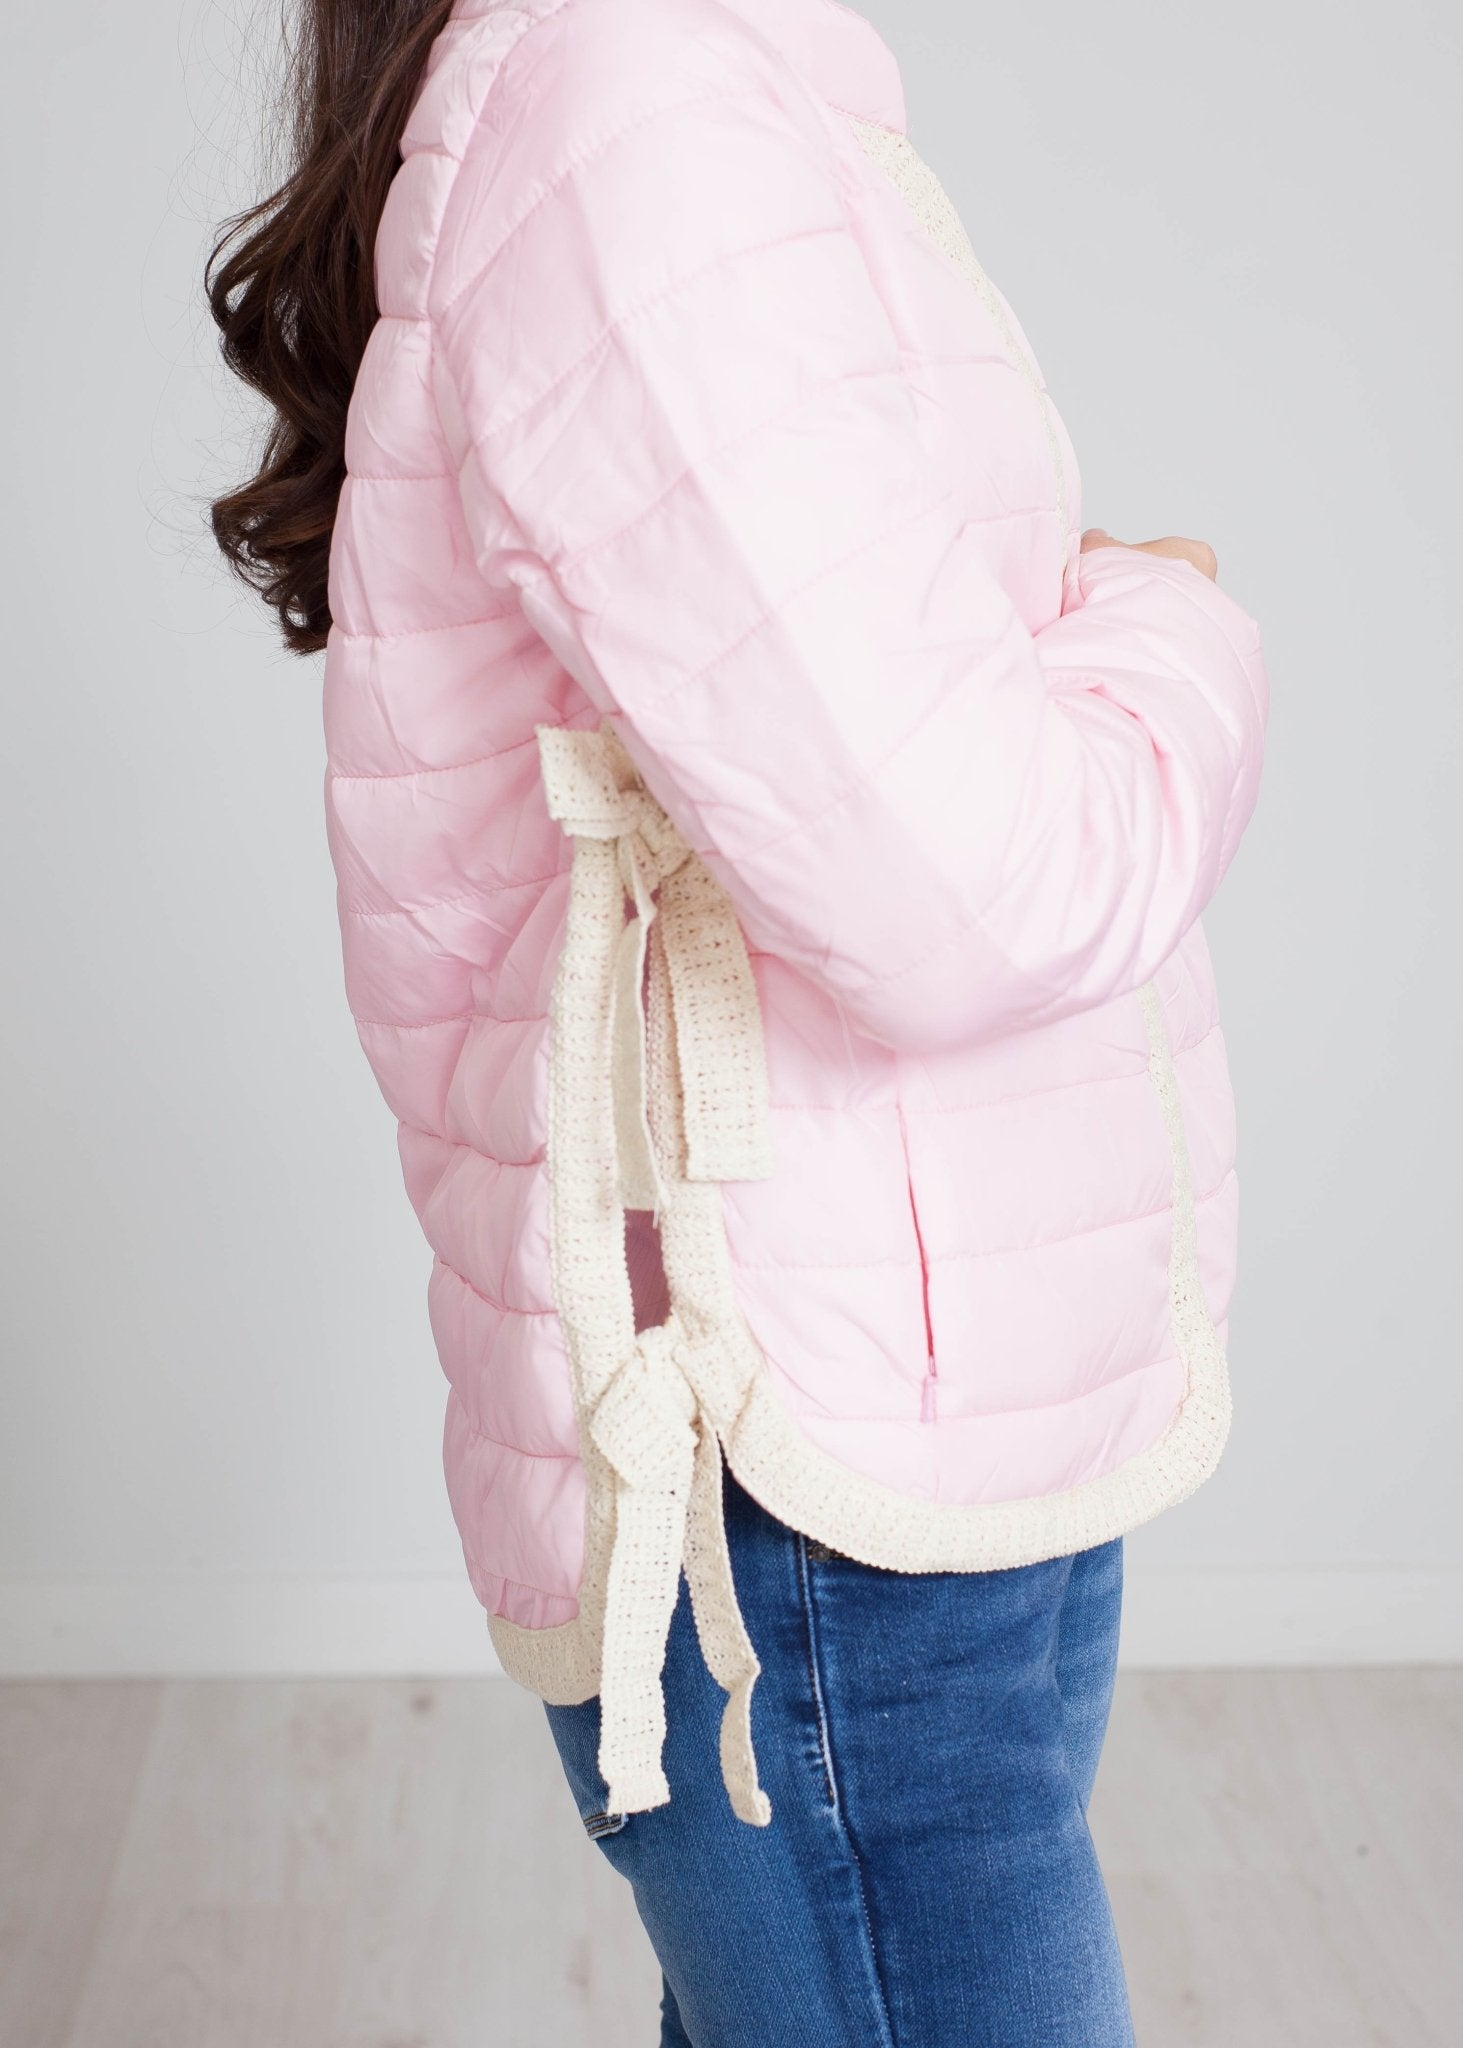 Alba Side Detail Jacket In Pink - The Walk in Wardrobe